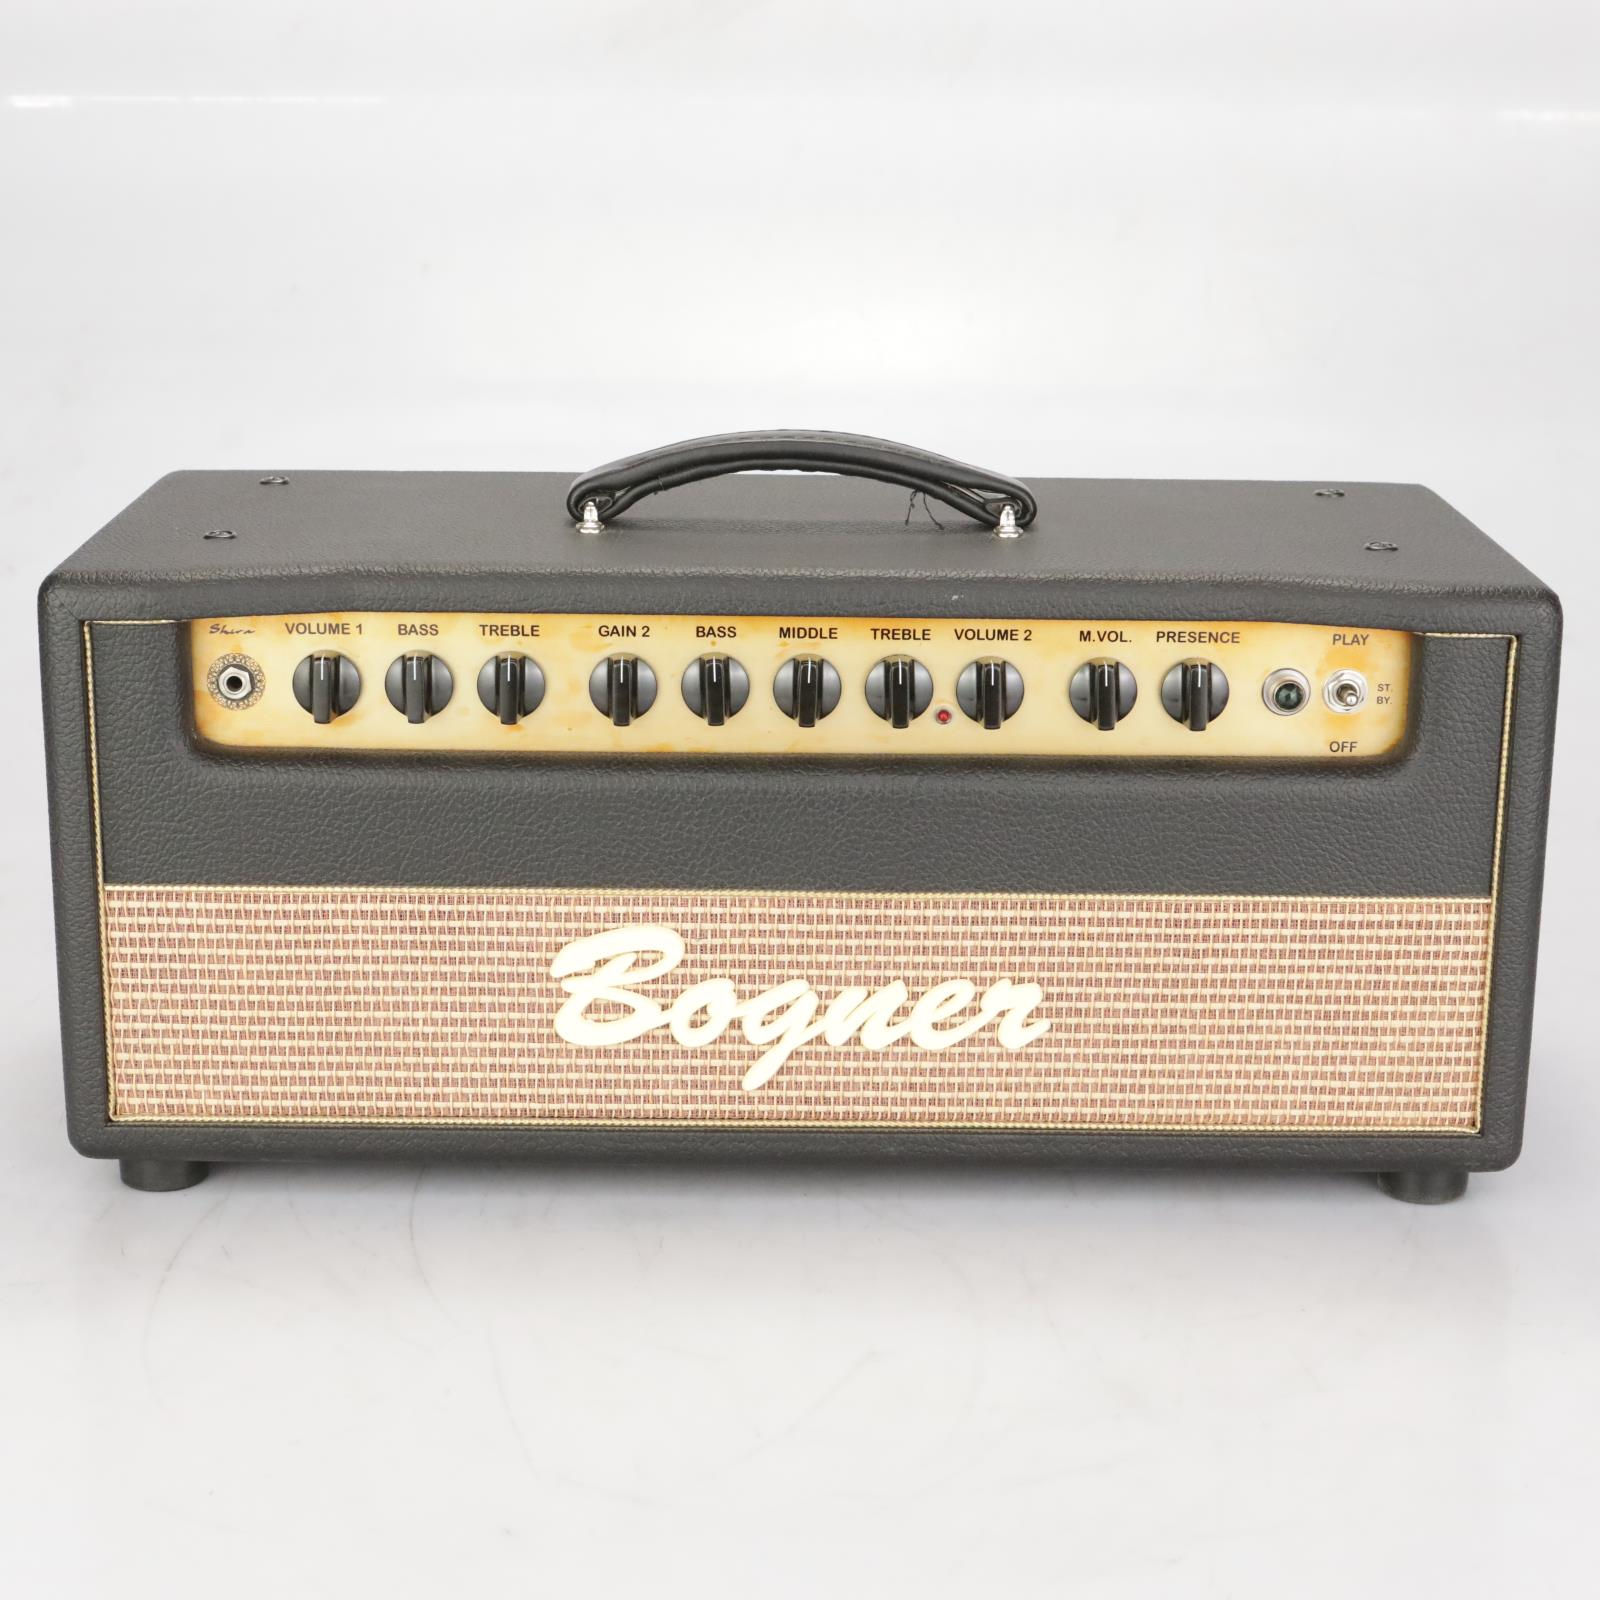 2005 Bogner Shiva Revision: Traffic Green EL34 80w Guitar Amplifier Head #38341